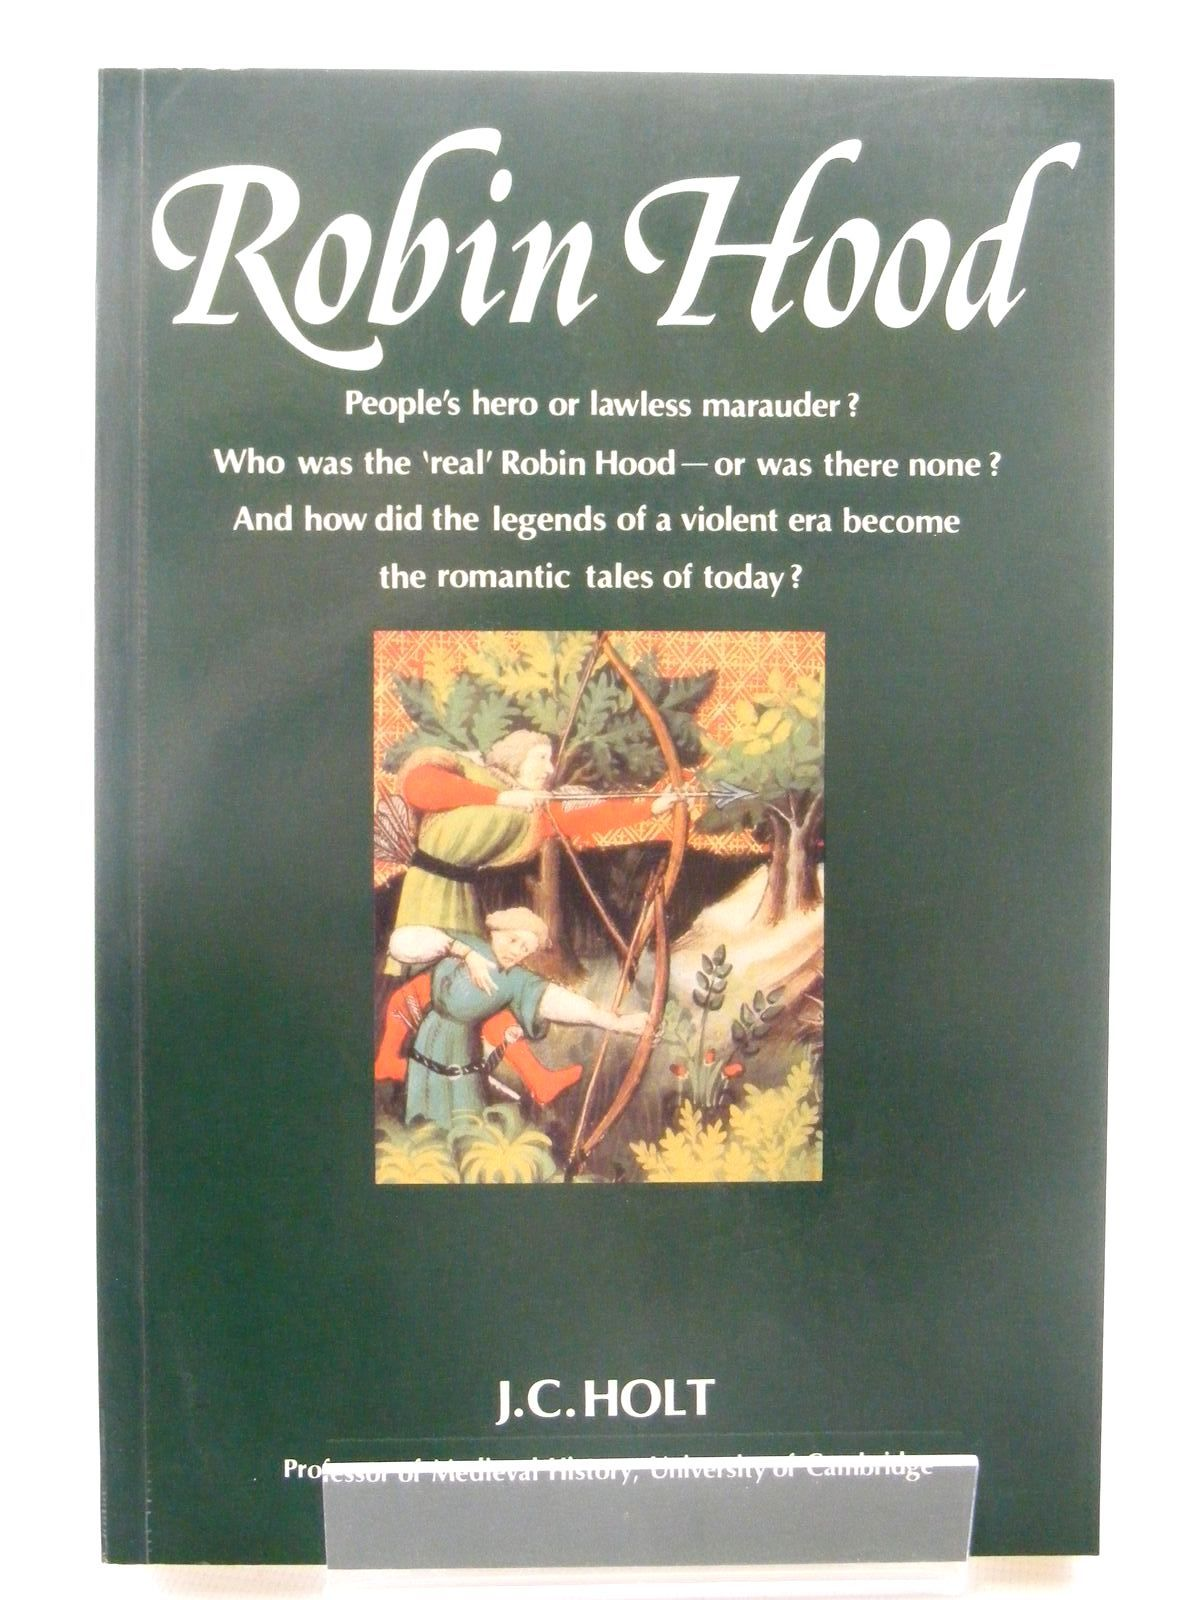 Photo of ROBIN HOOD written by Holt, J.C. published by Thames and Hudson (STOCK CODE: 1815959)  for sale by Stella & Rose's Books